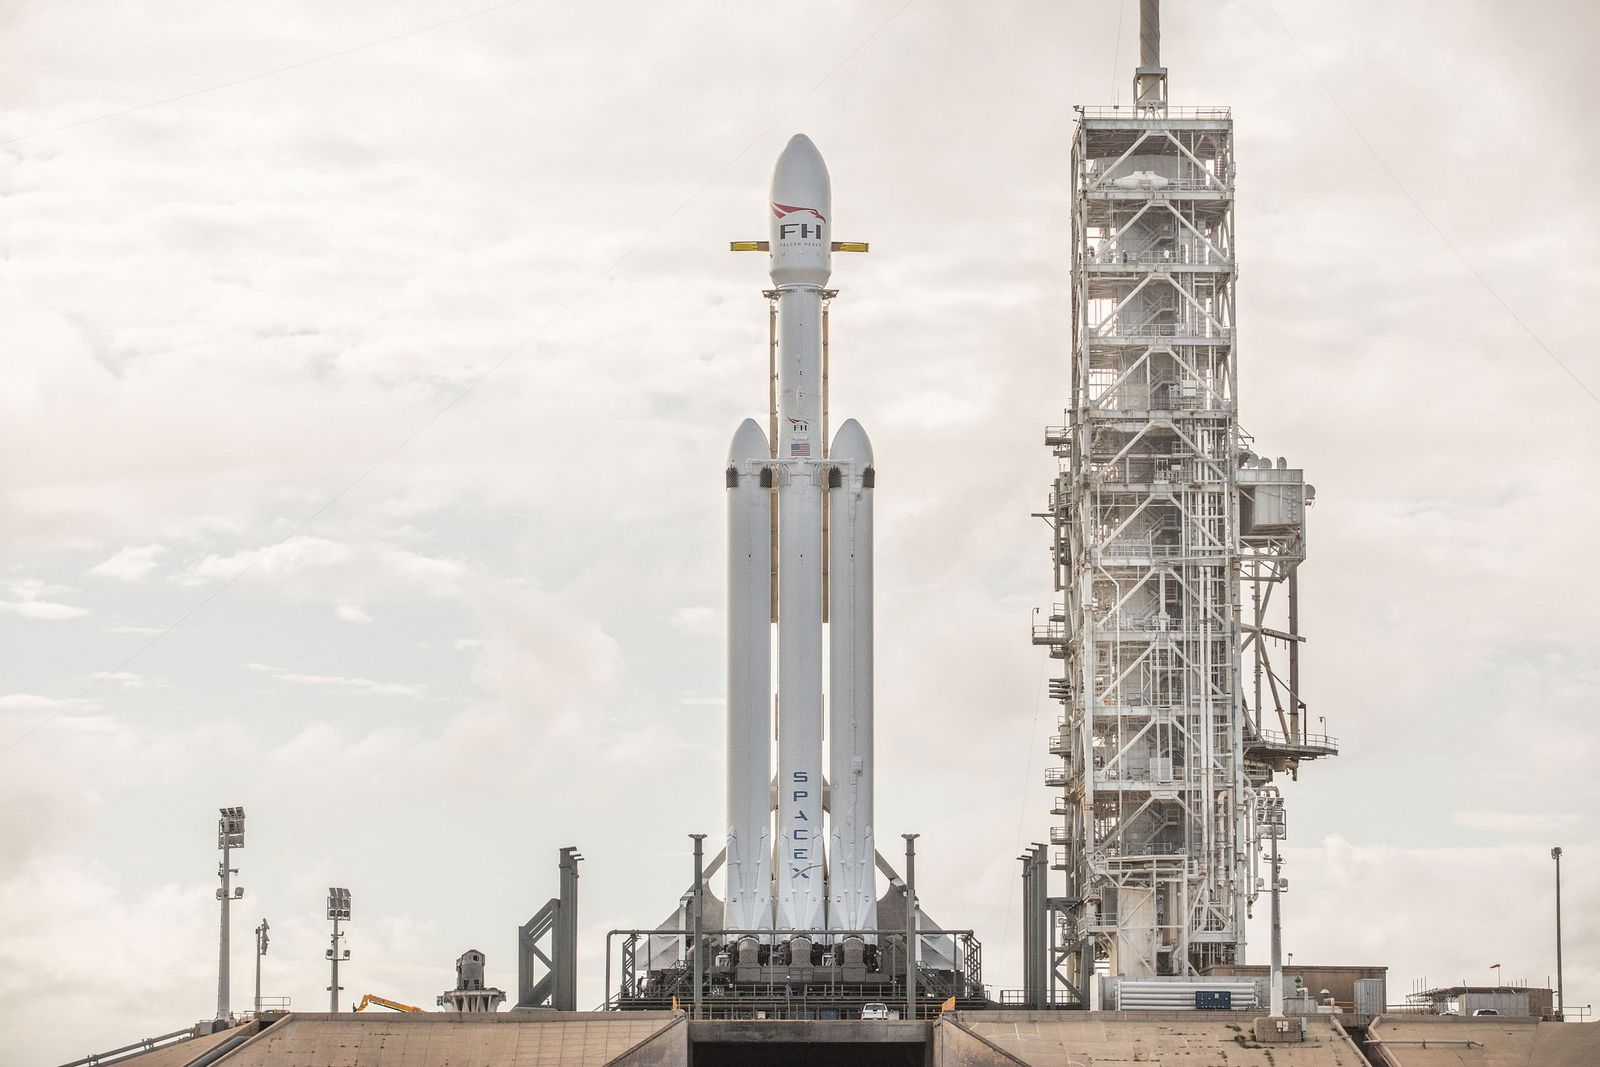 SpaceX_FalconHeavy